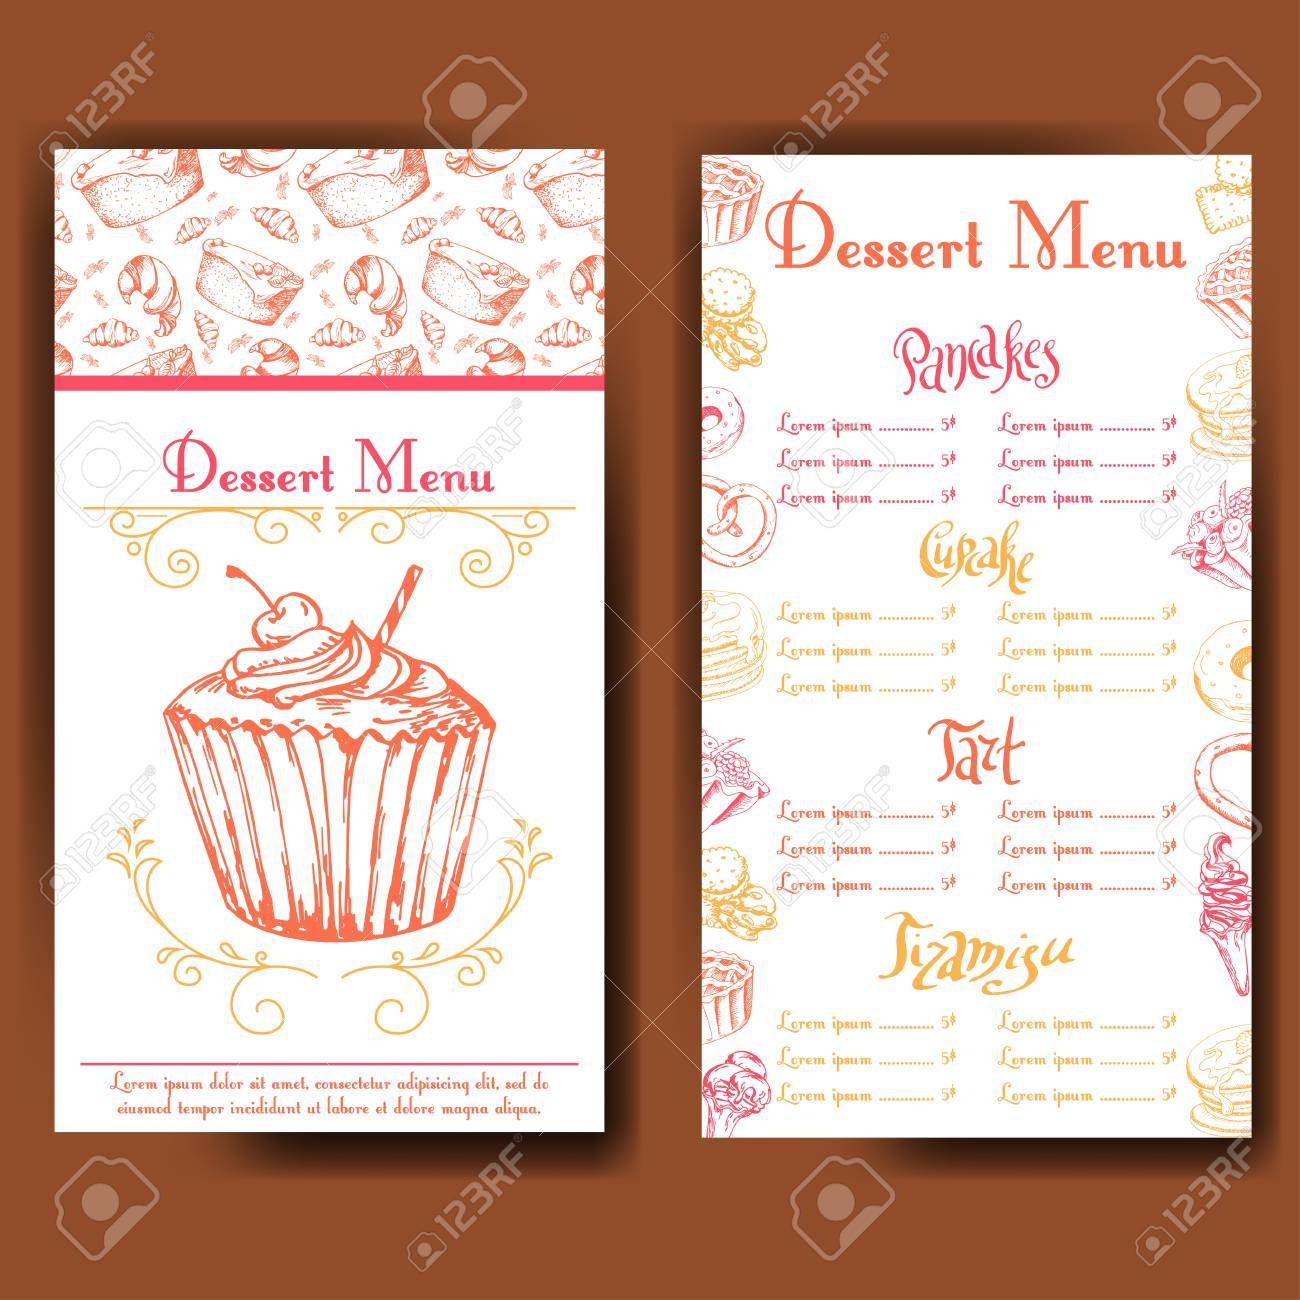 Design For Sweets Shop Template With Different Hand Drawn Desserts